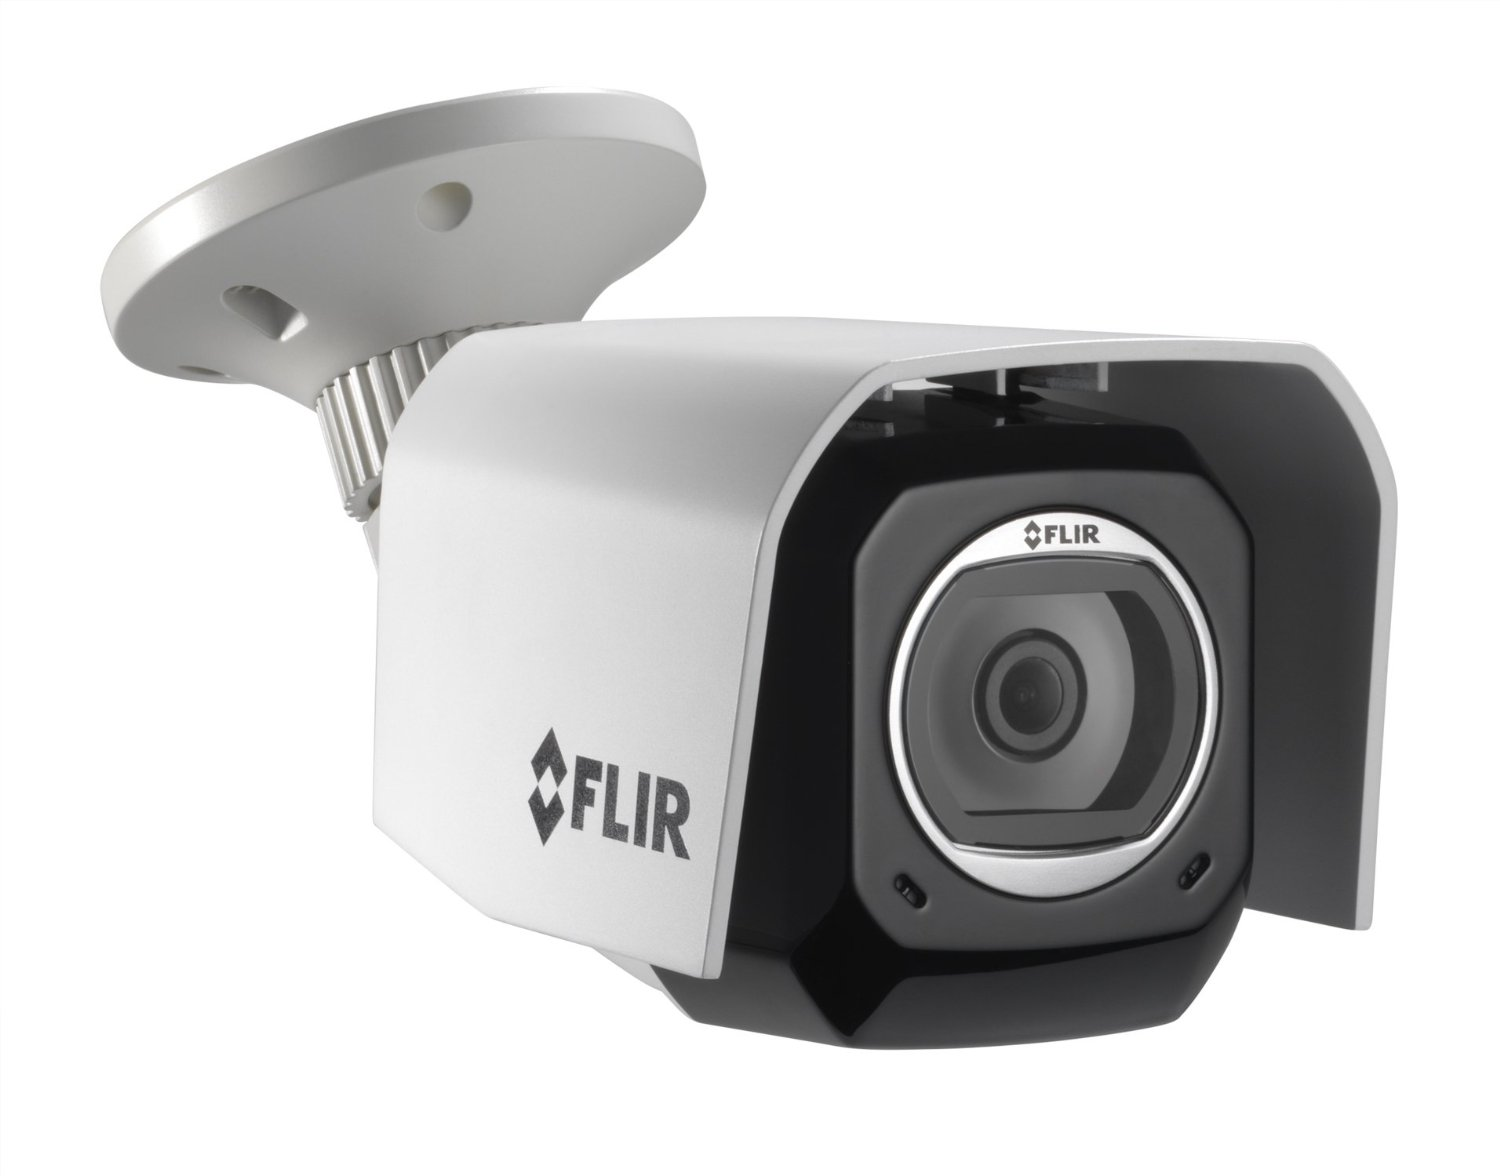 FLIR CCTV closed circuit Video Surveillance